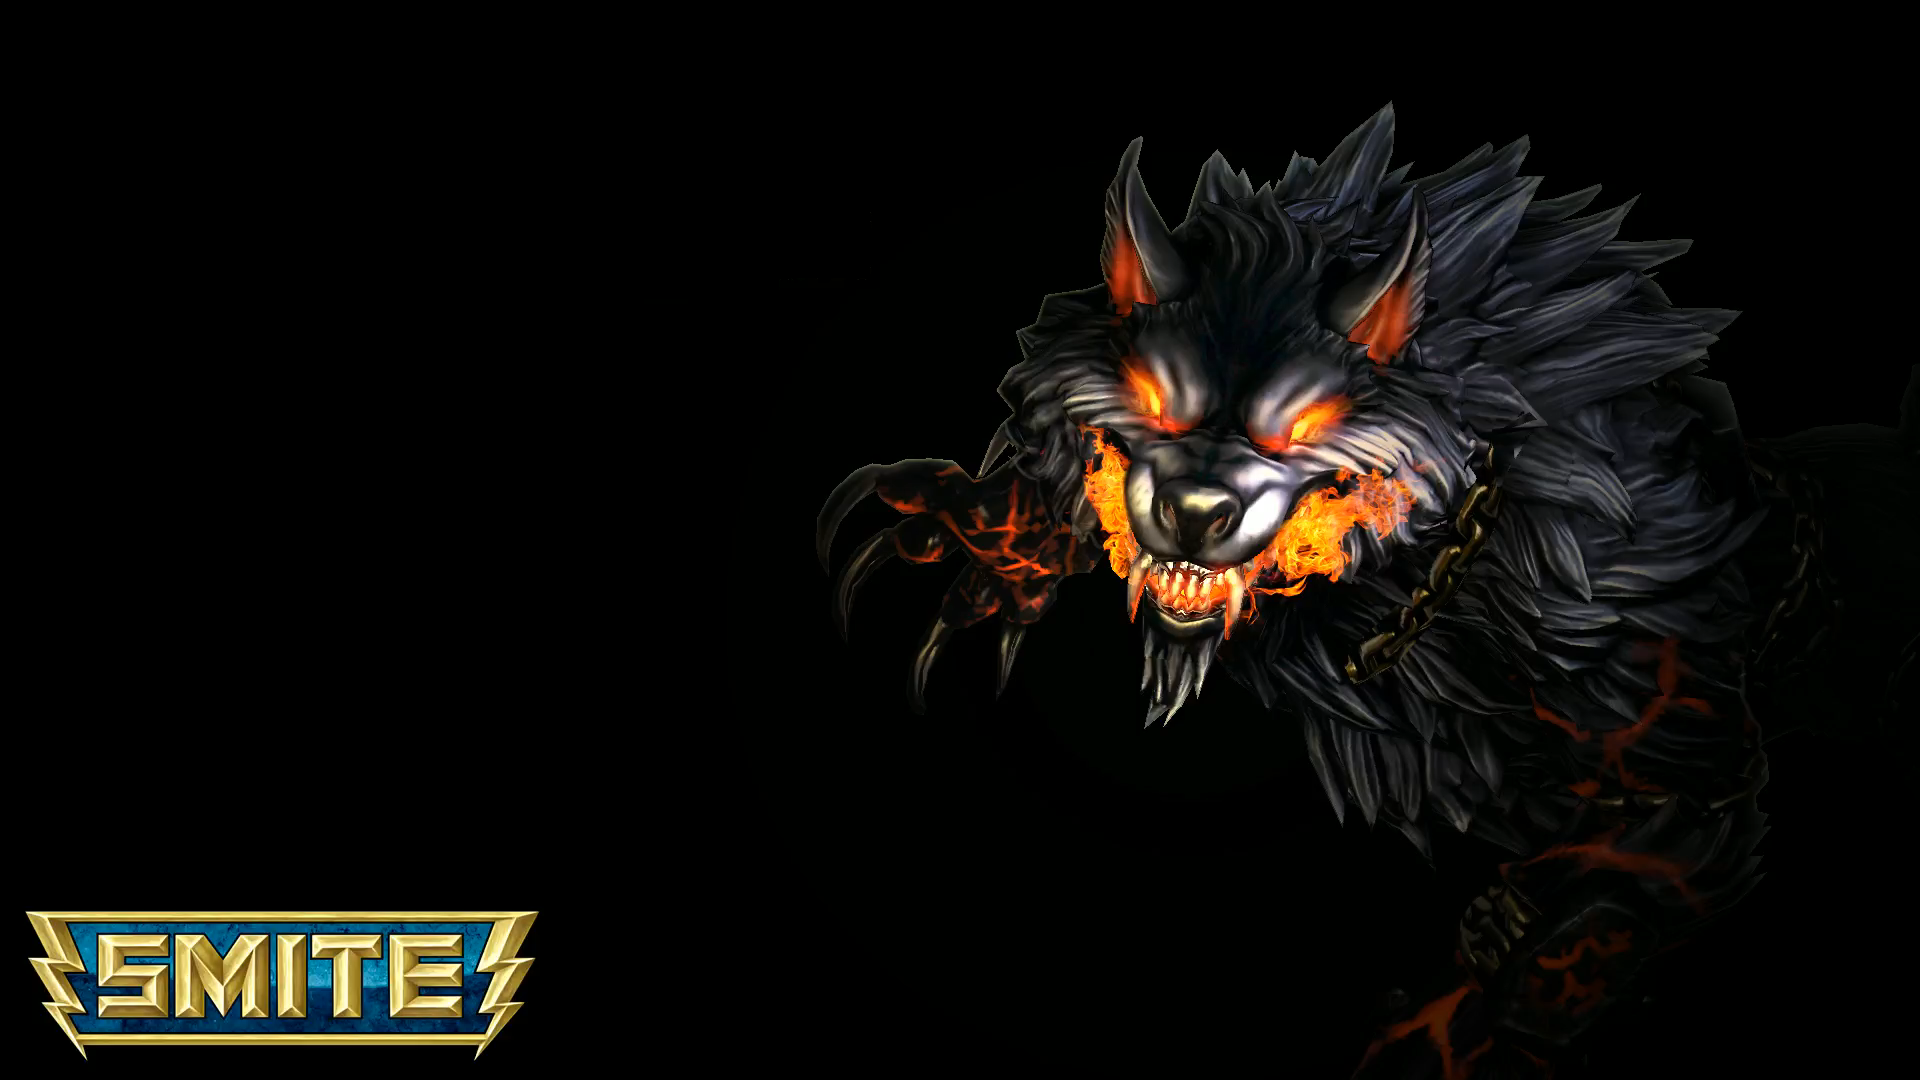 smite images